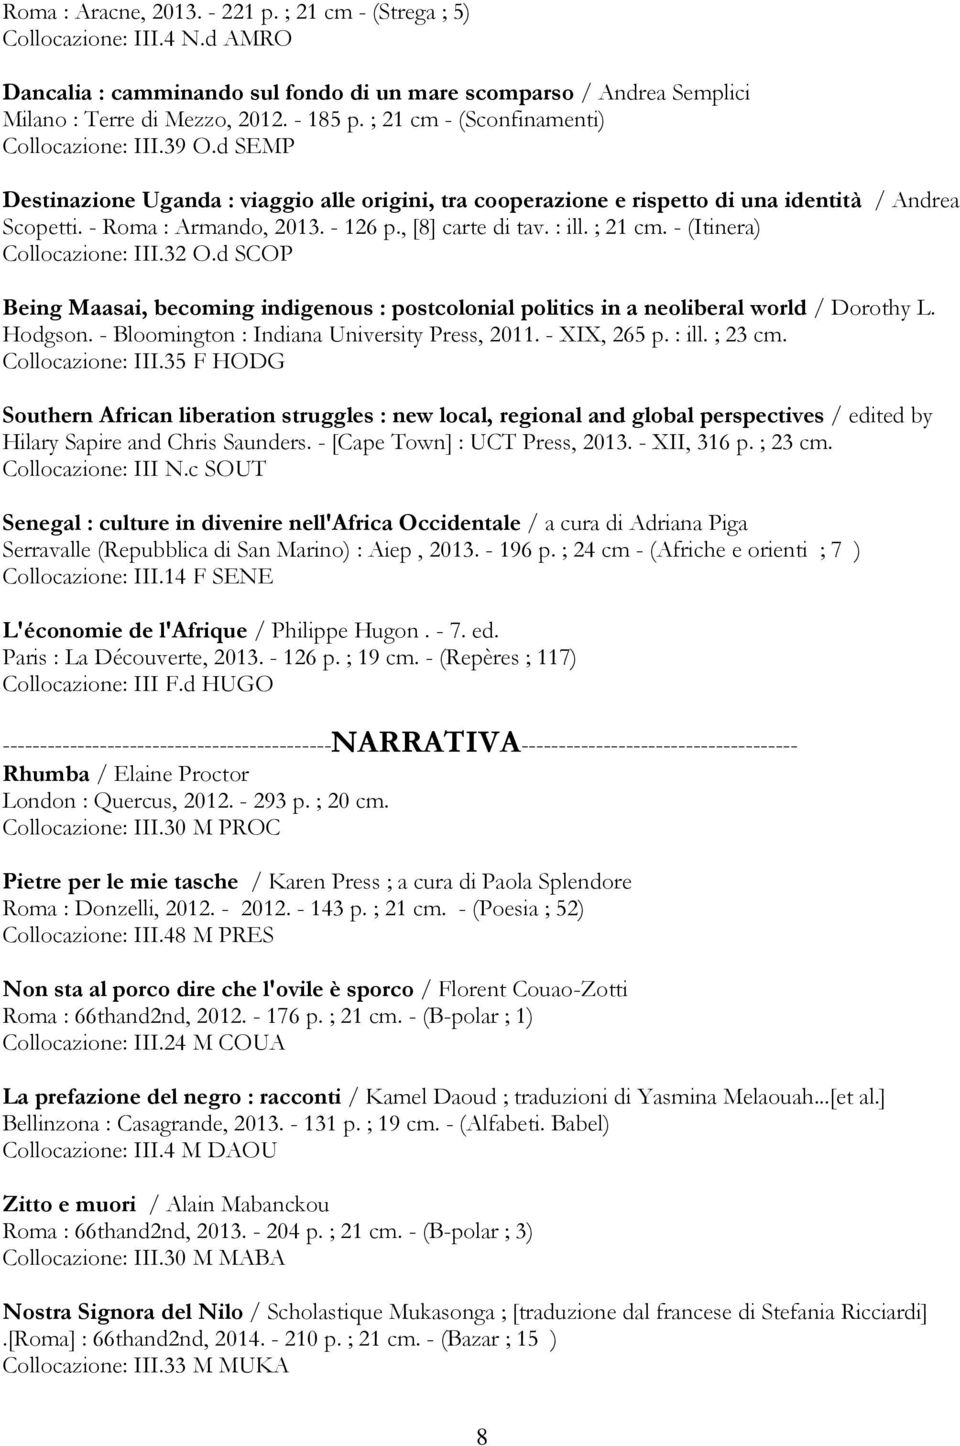 , [8] carte di tav. : ill. ; 21 cm. - (Itinera) Collocazione: III.32 O.d SCOP Being Maasai, becoming indigenous : postcolonial politics in a neoliberal world / Dorothy L. Hodgson.